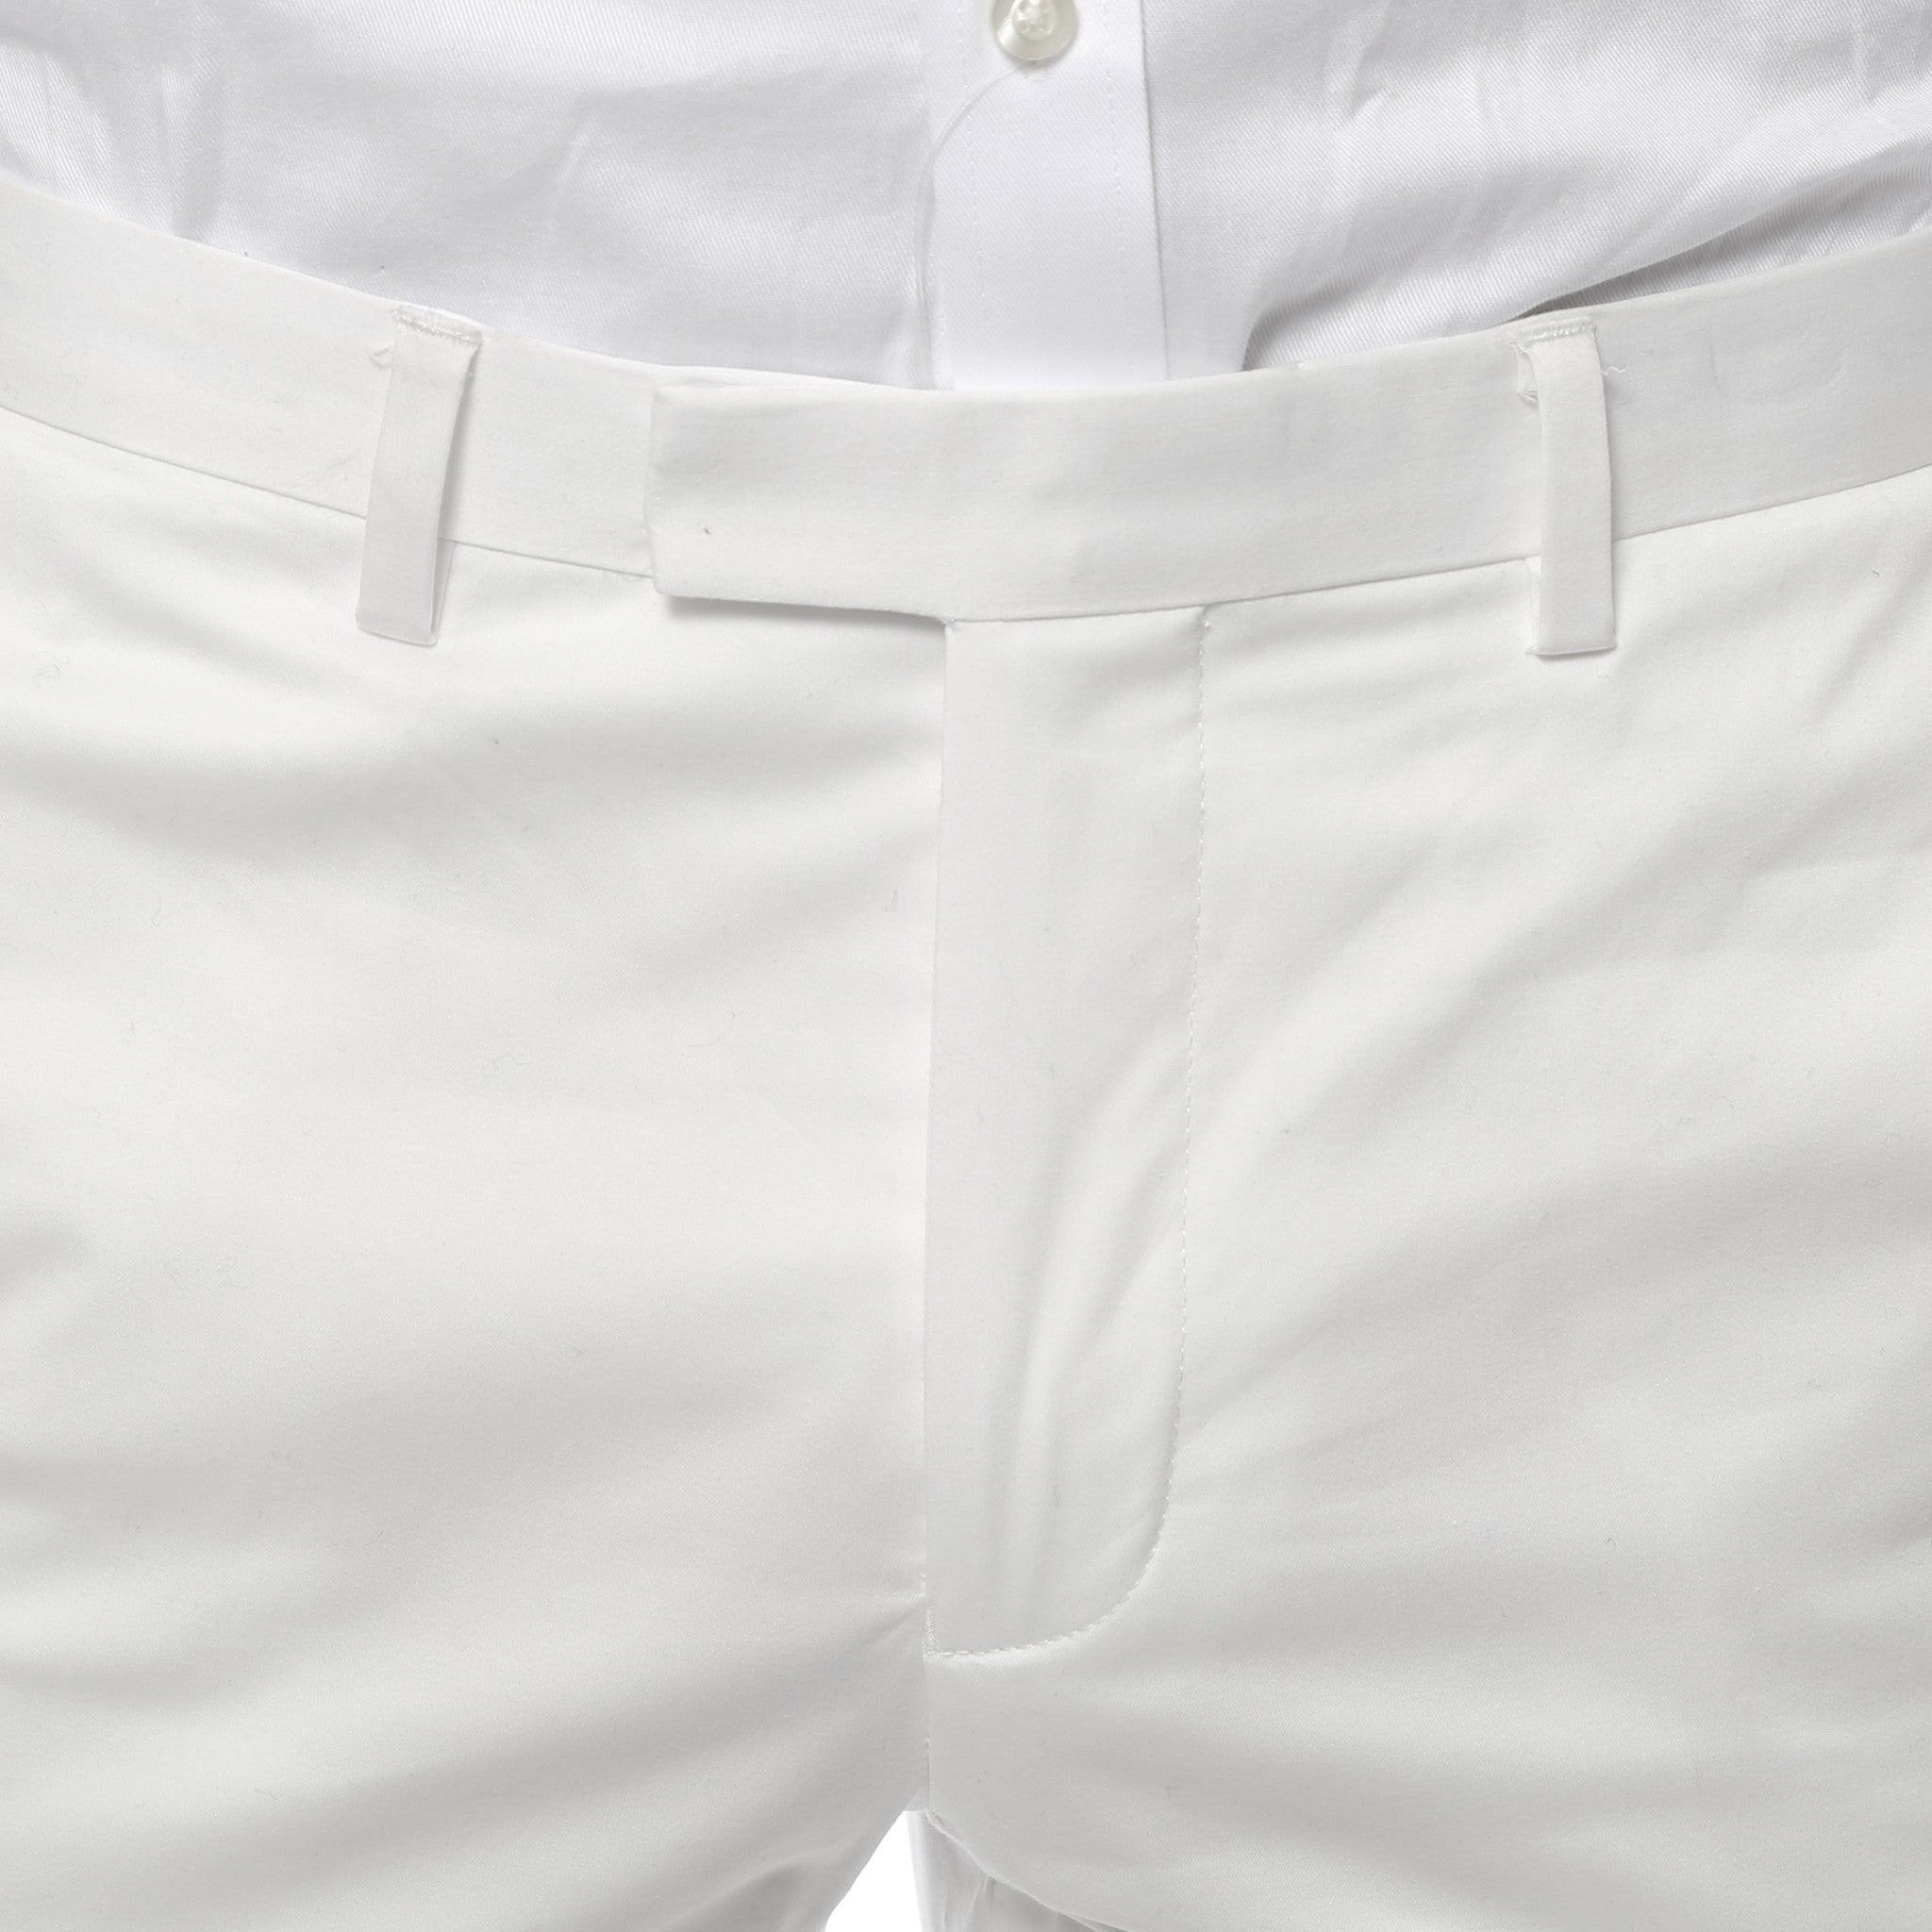 Zonettie Kilo Off White Straight Leg Chino Pants